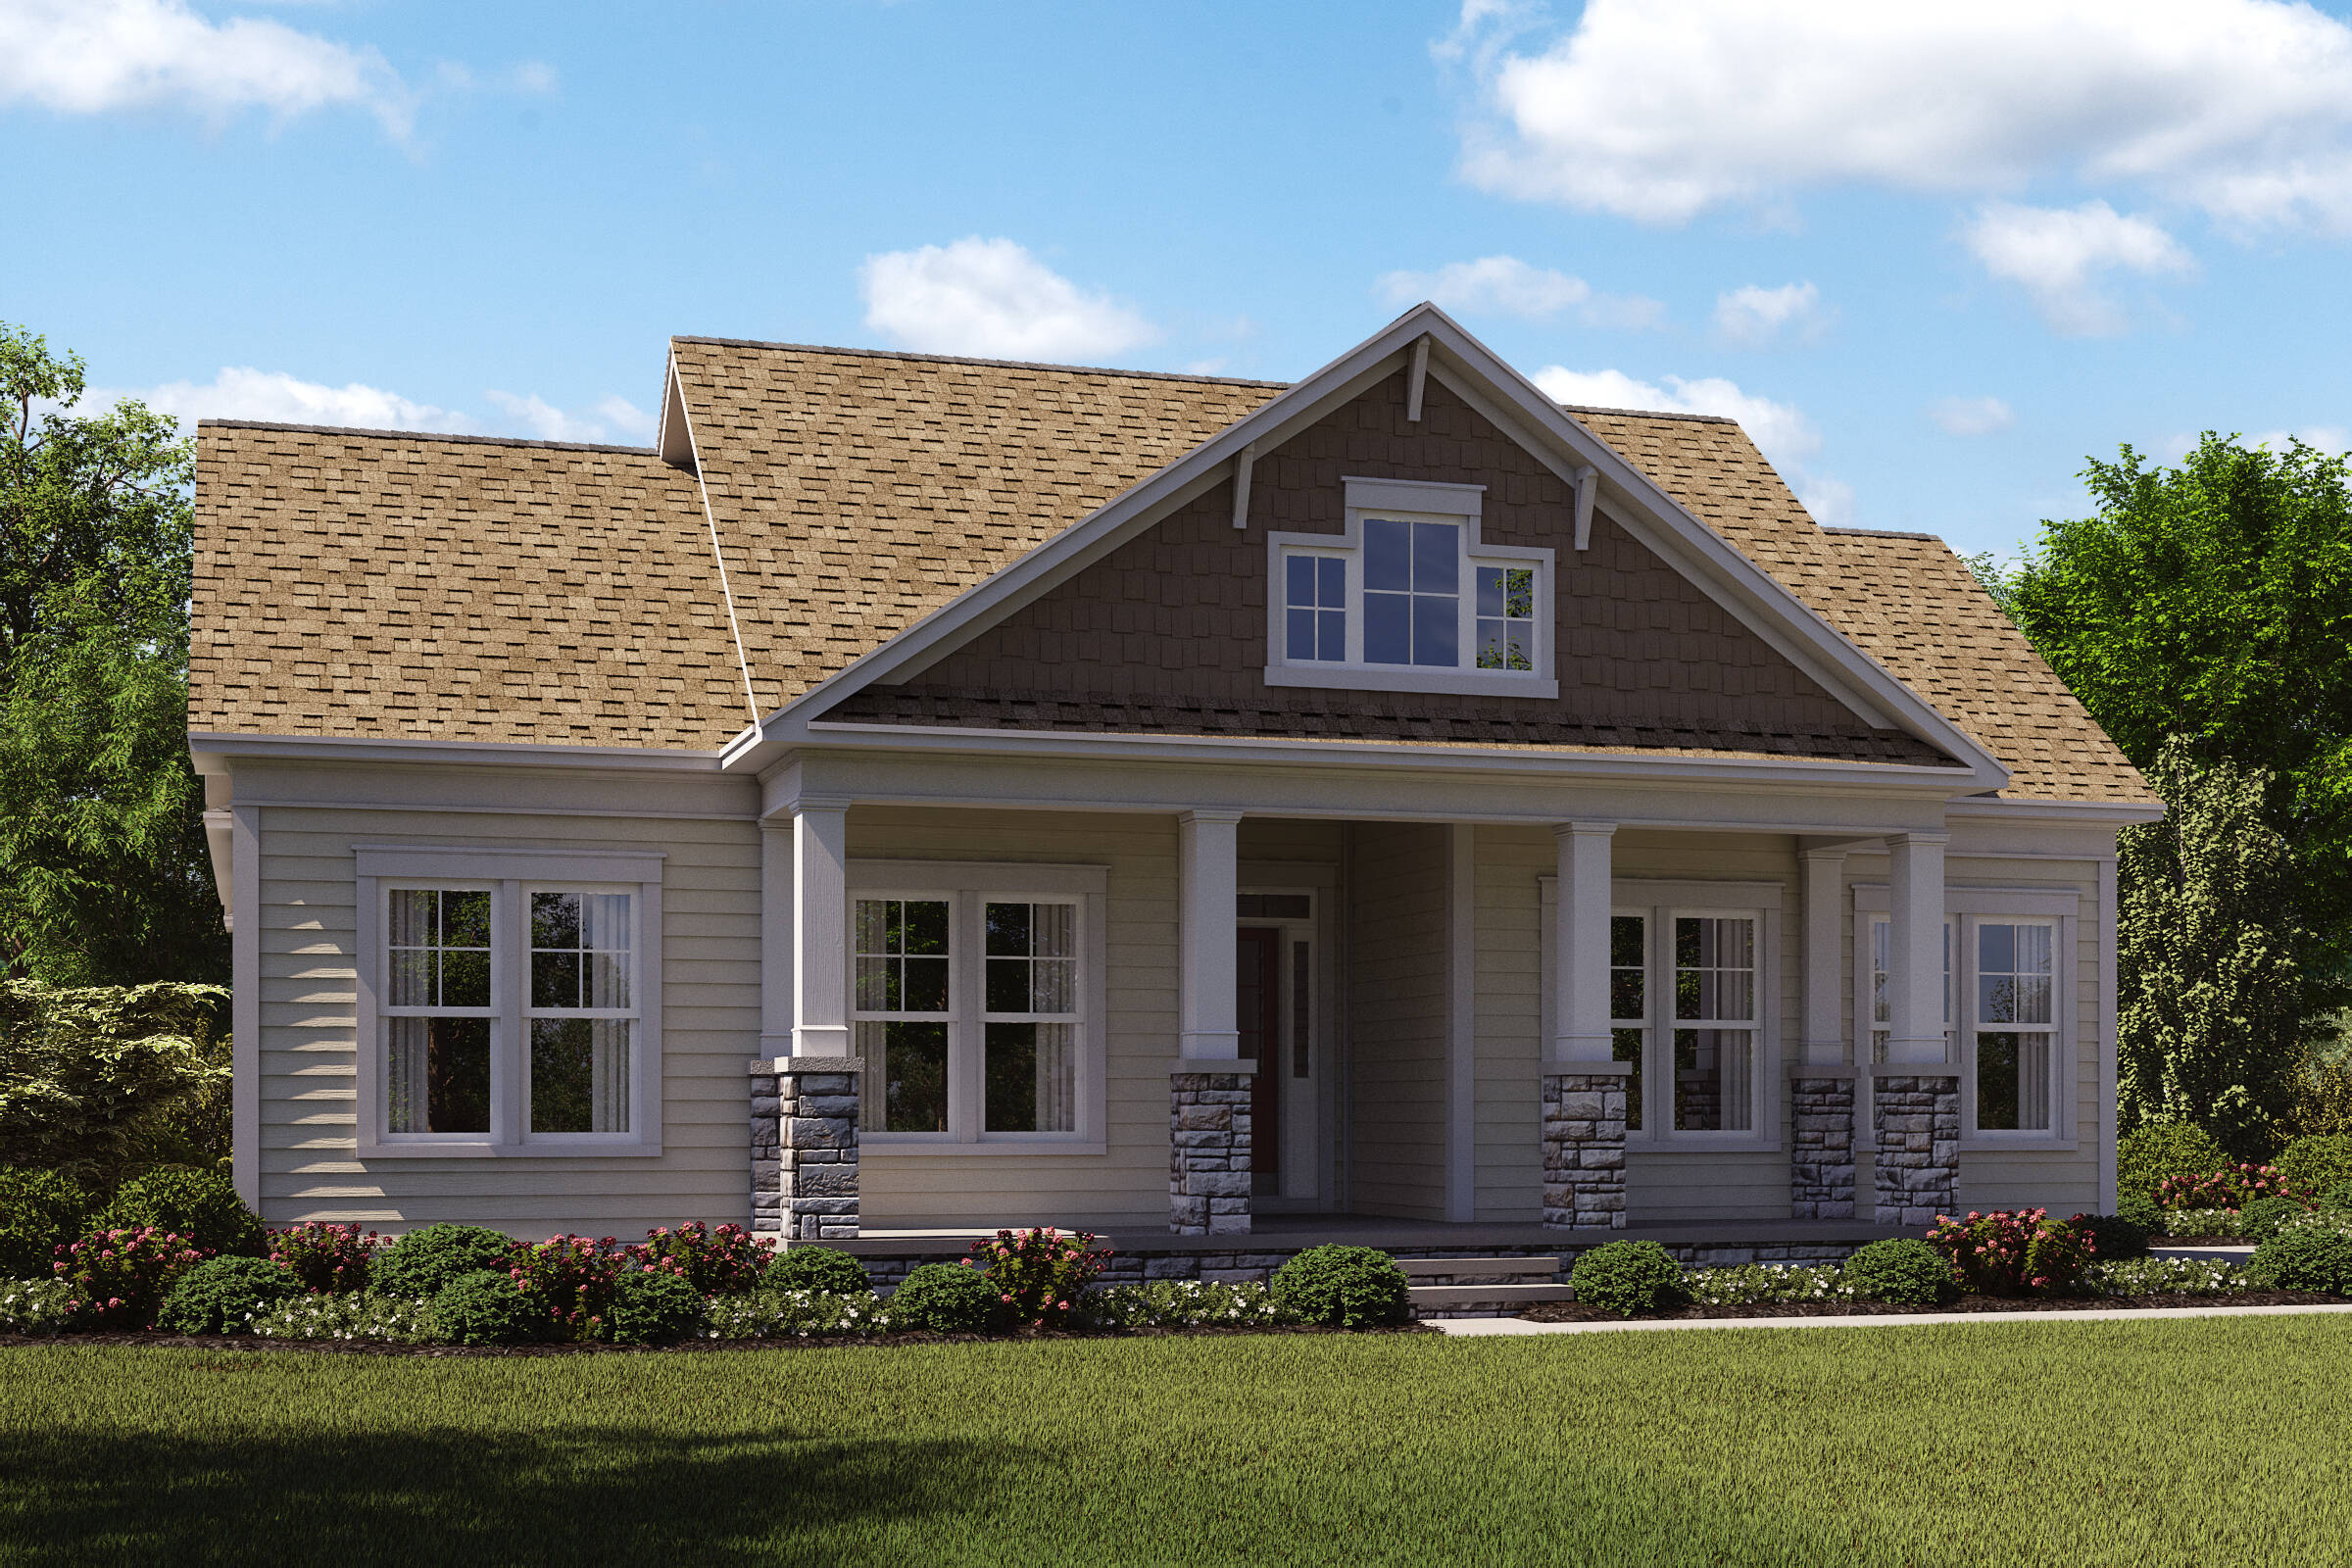 highbury d new homes at willowsford greens in virginia